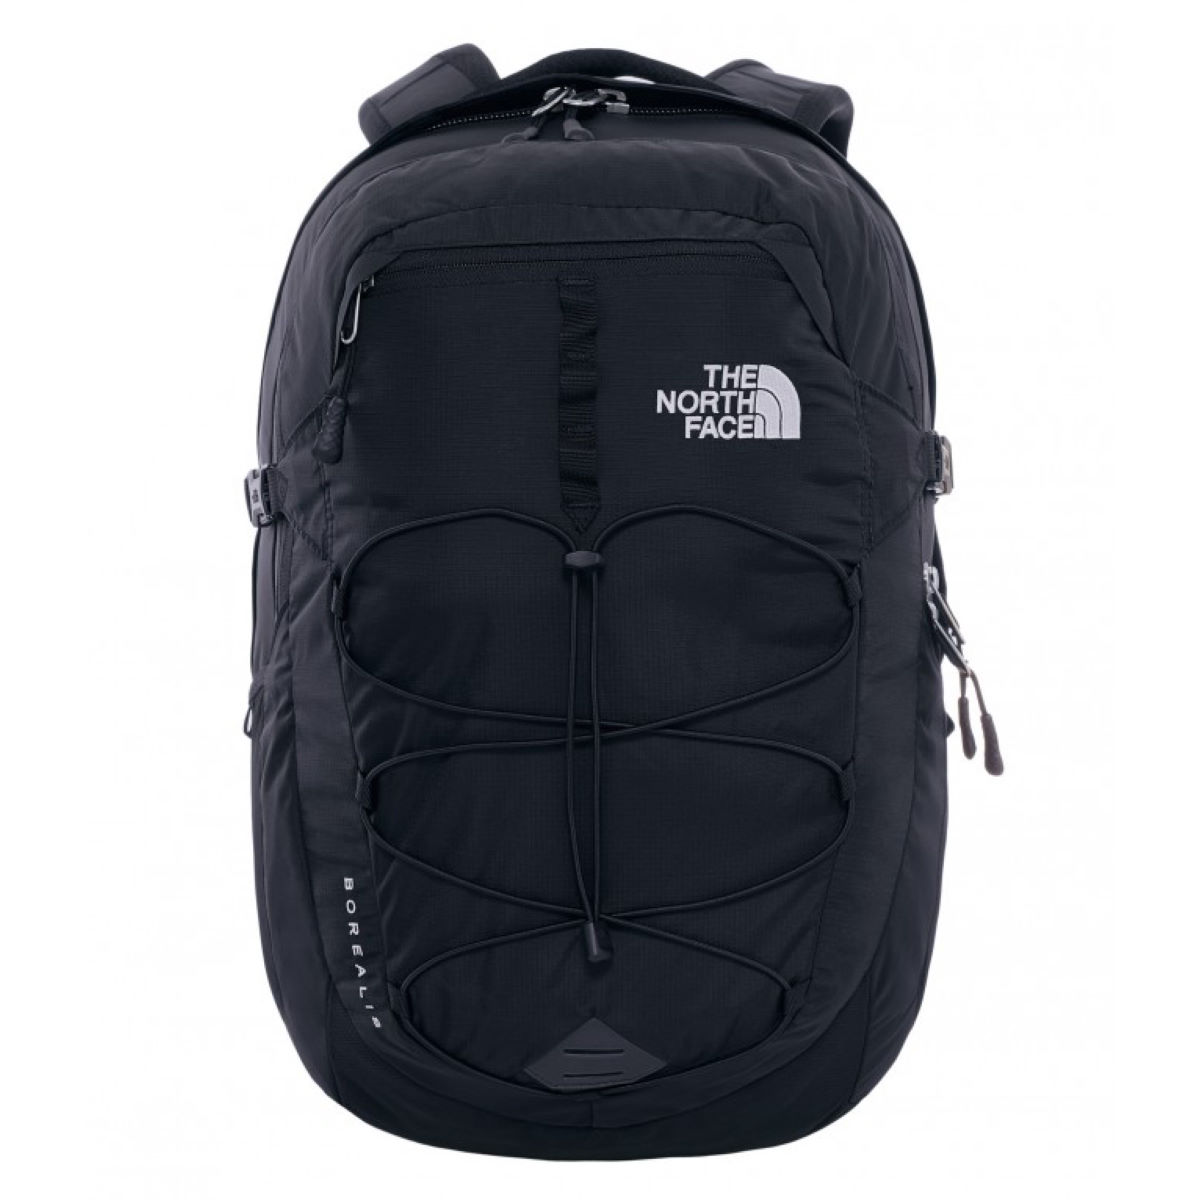 d6790d207 Wiggle | The North Face Borealis Backpack | Rucksacks